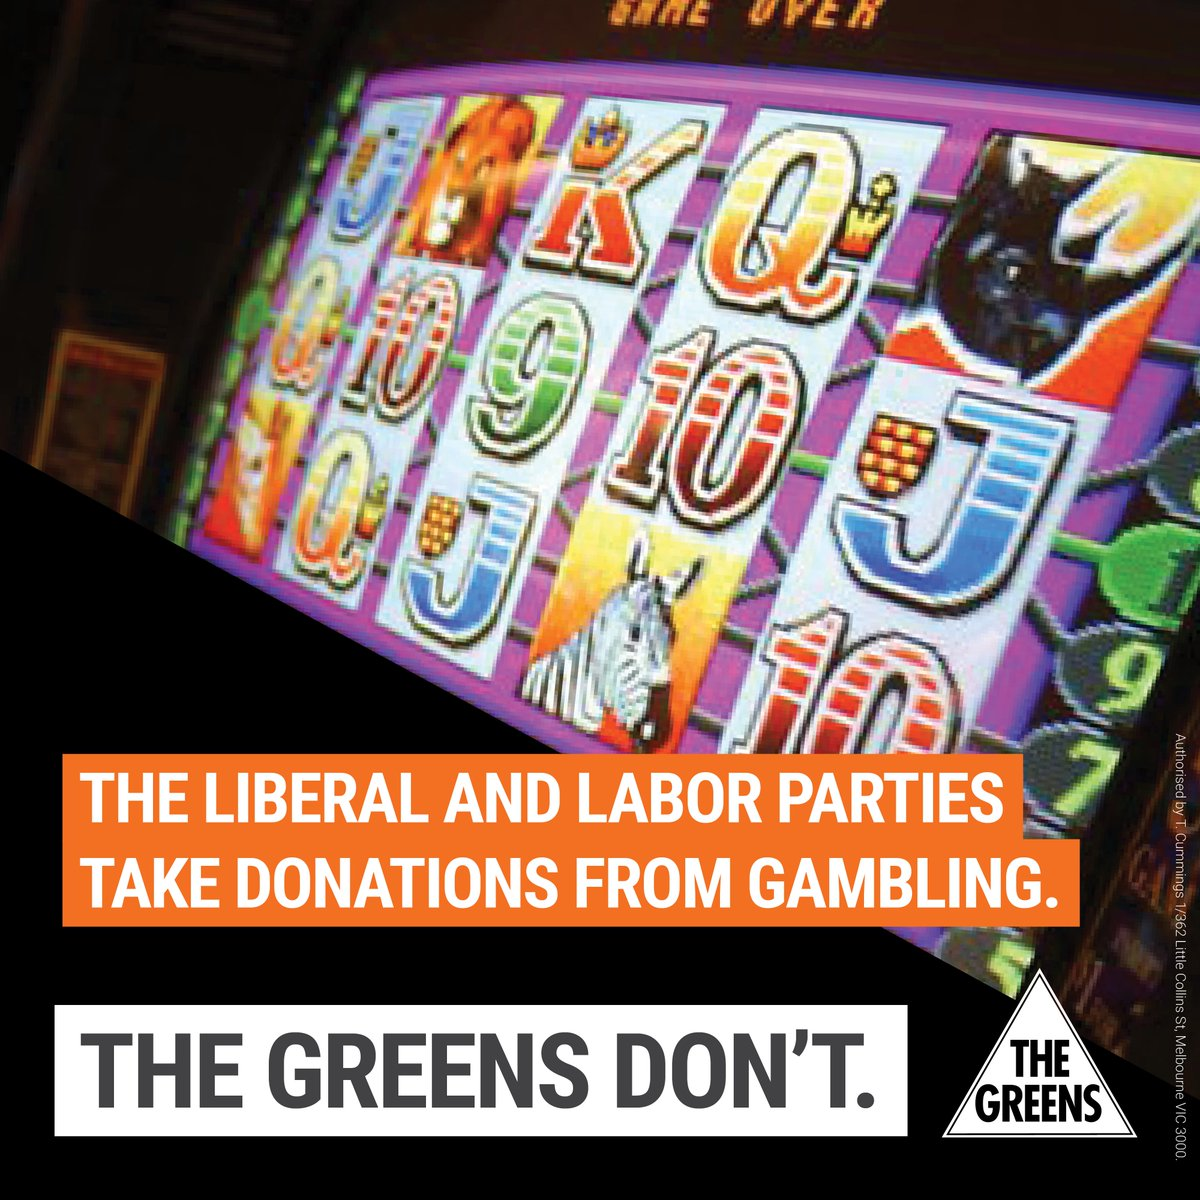 The Labor & Liberal parties may take donations from gambling; the Greens don't. This fight is personal. #Greens16 https://t.co/bHAUpZyZP4